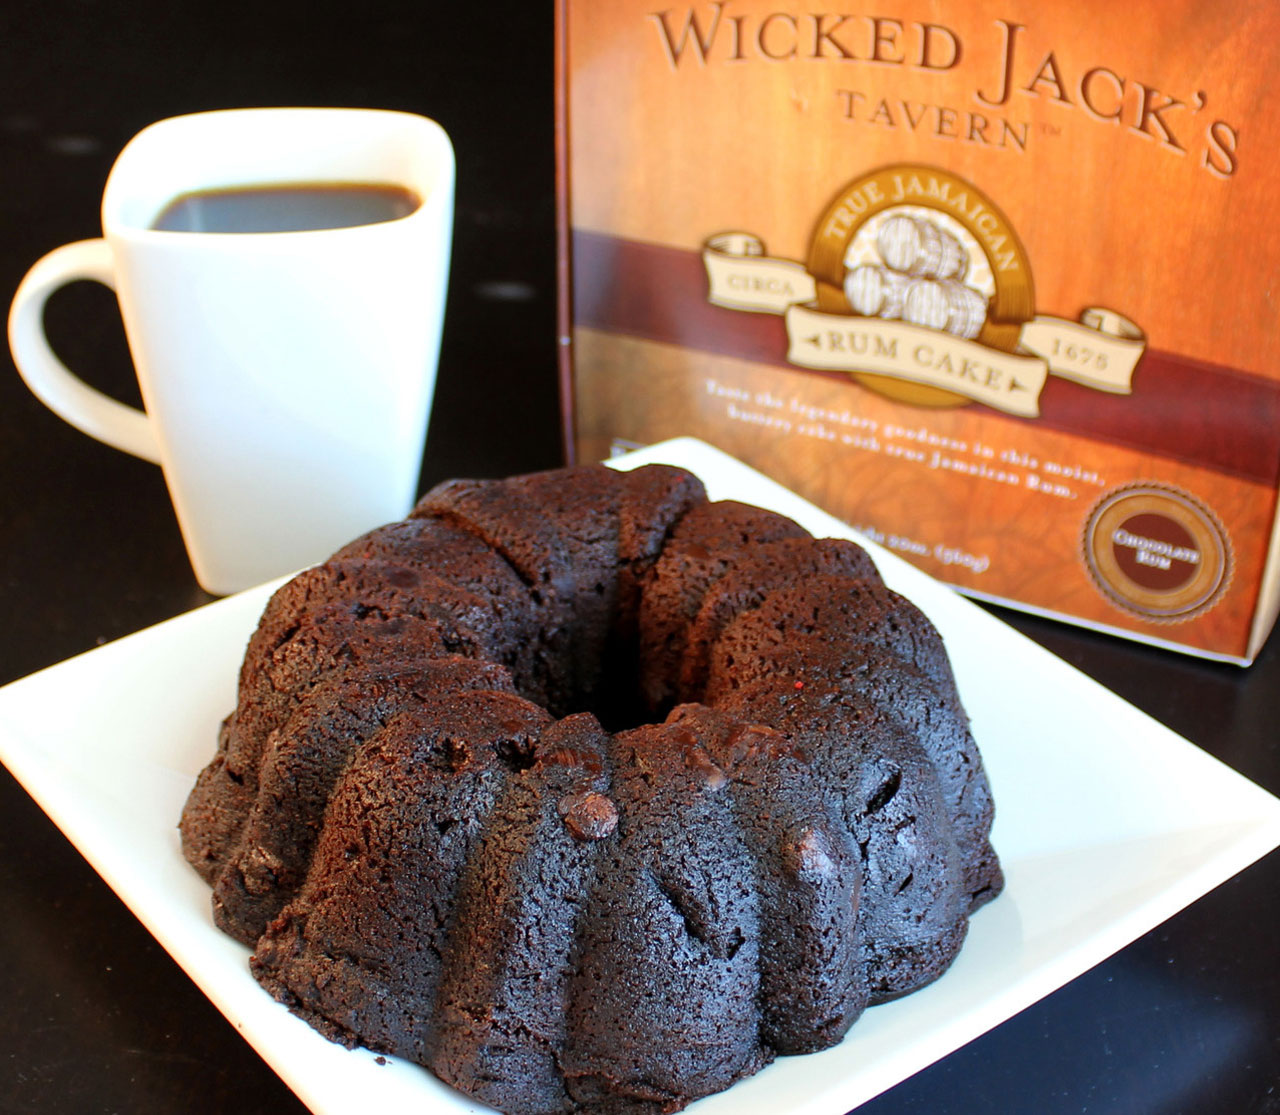 Gifts Wicked Jack's Chocolate Rum Cake